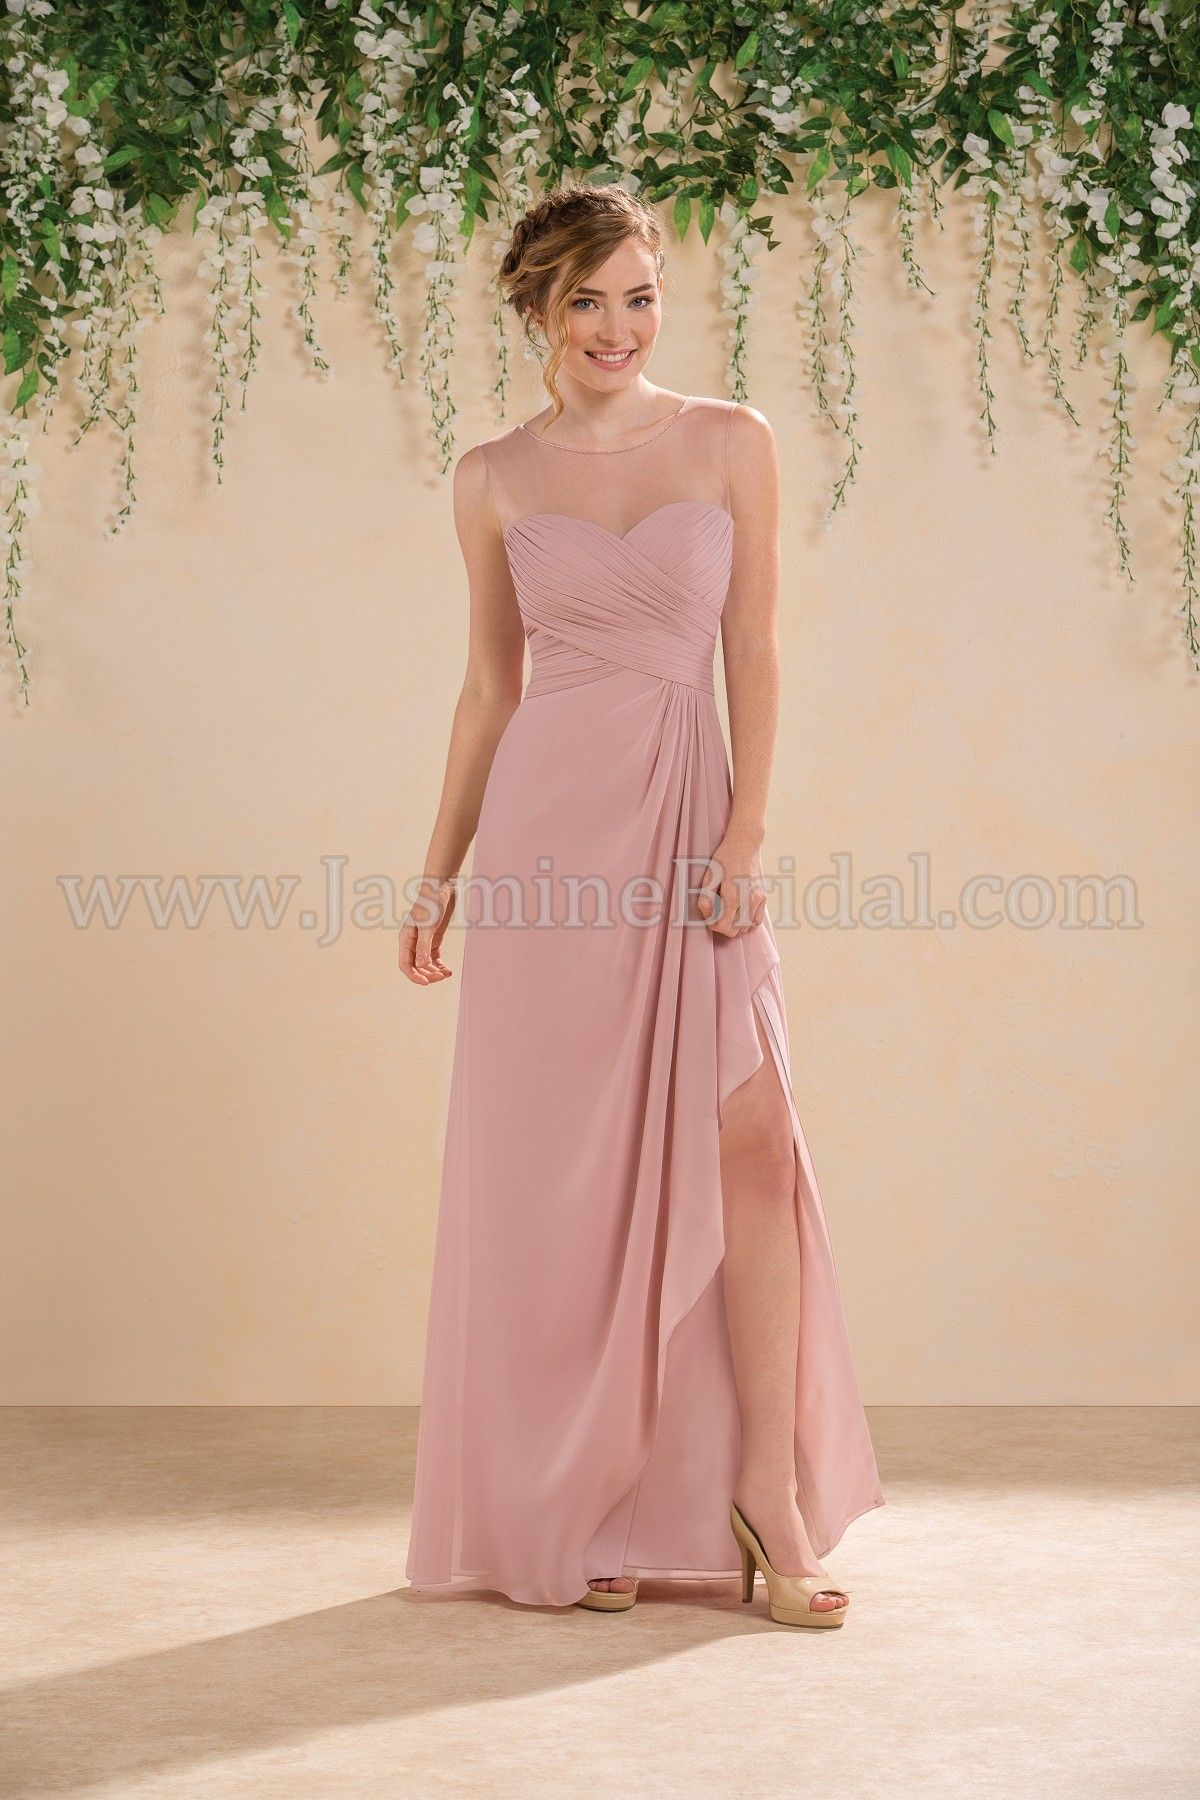 Jasmine bridal bridesmaid dress b2 style b183013 in misty pink jasmine bridal bridesmaid dress b2 style b183013 in misty pink ombrellifo Images